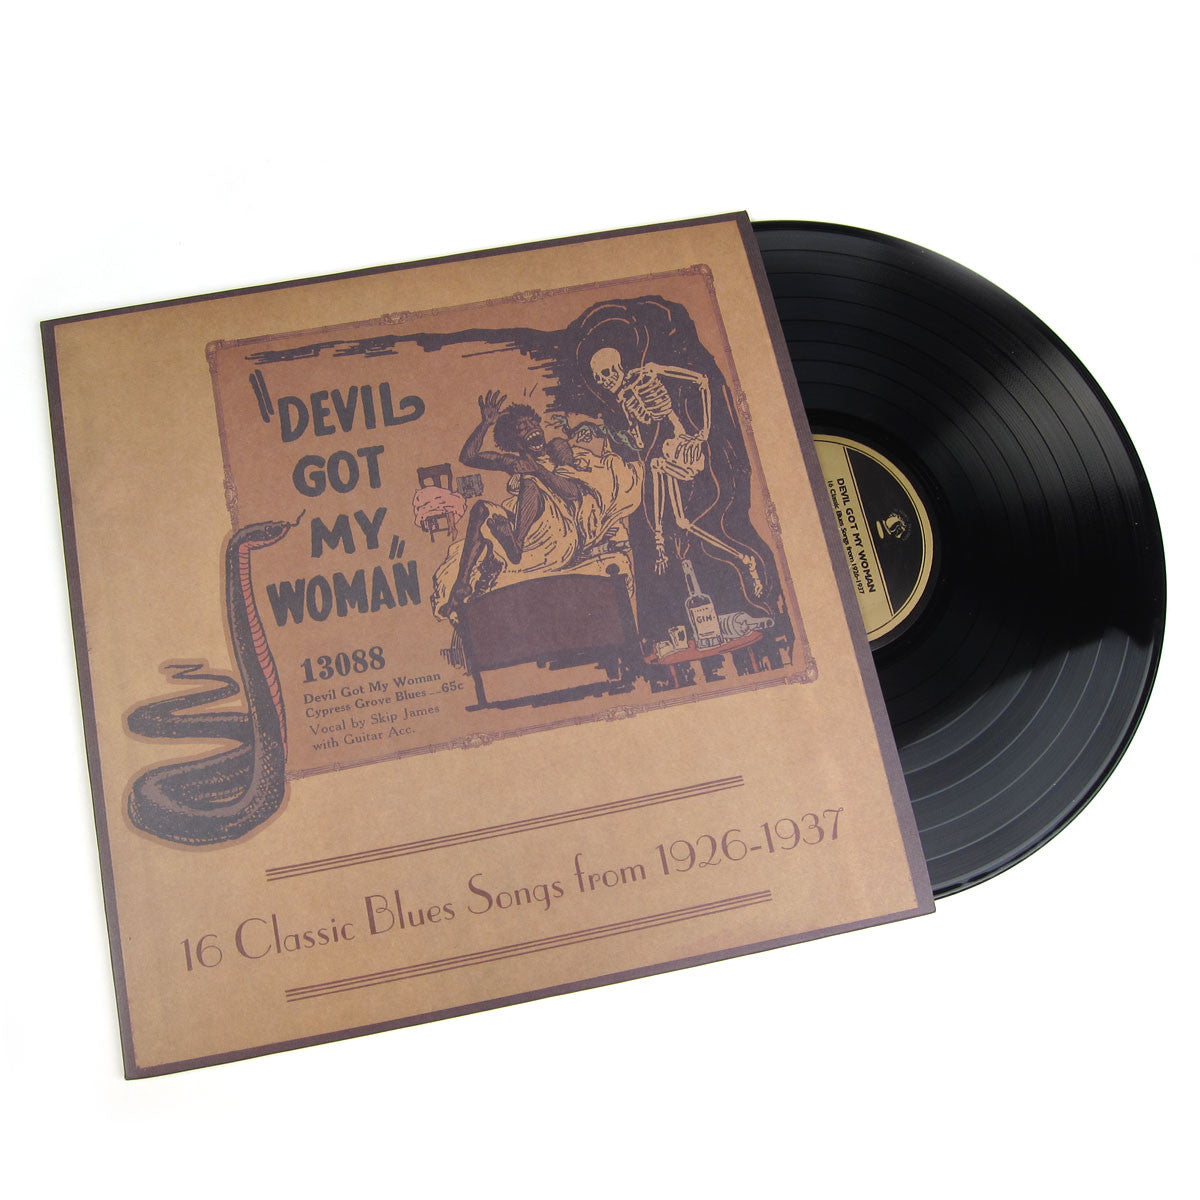 Hi Horse Records: Devil Got My Woman - 16 Classic Blues Songs From 1926-1937 (180g) Vinyl LP